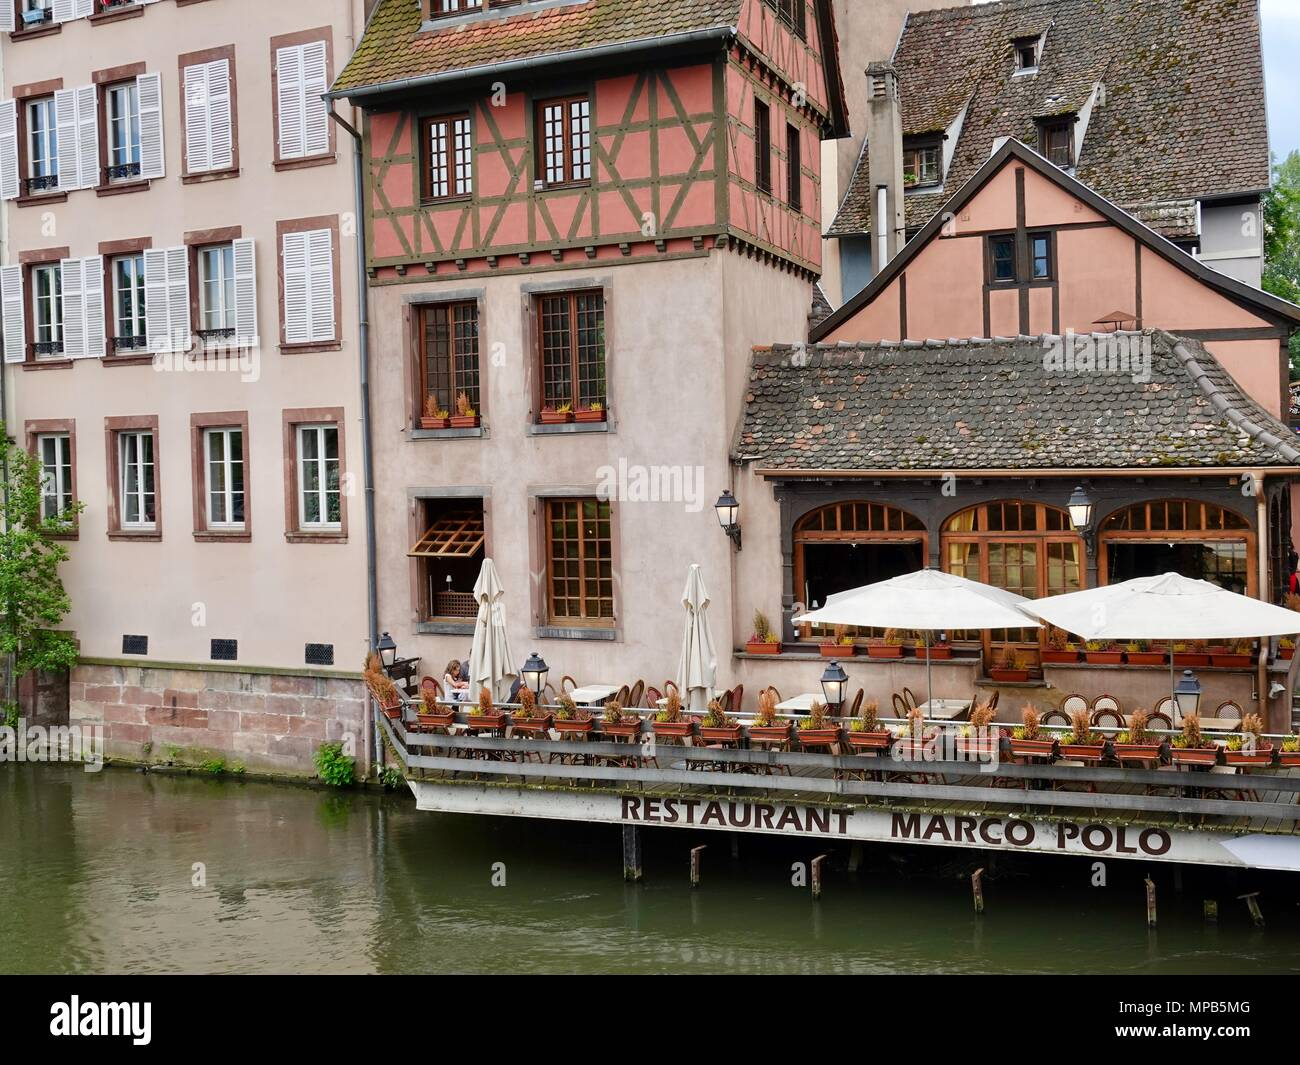 People eating on the terrace of a pizza restaurant on the edge of the Ill River, Strasbourg, France - Stock Image